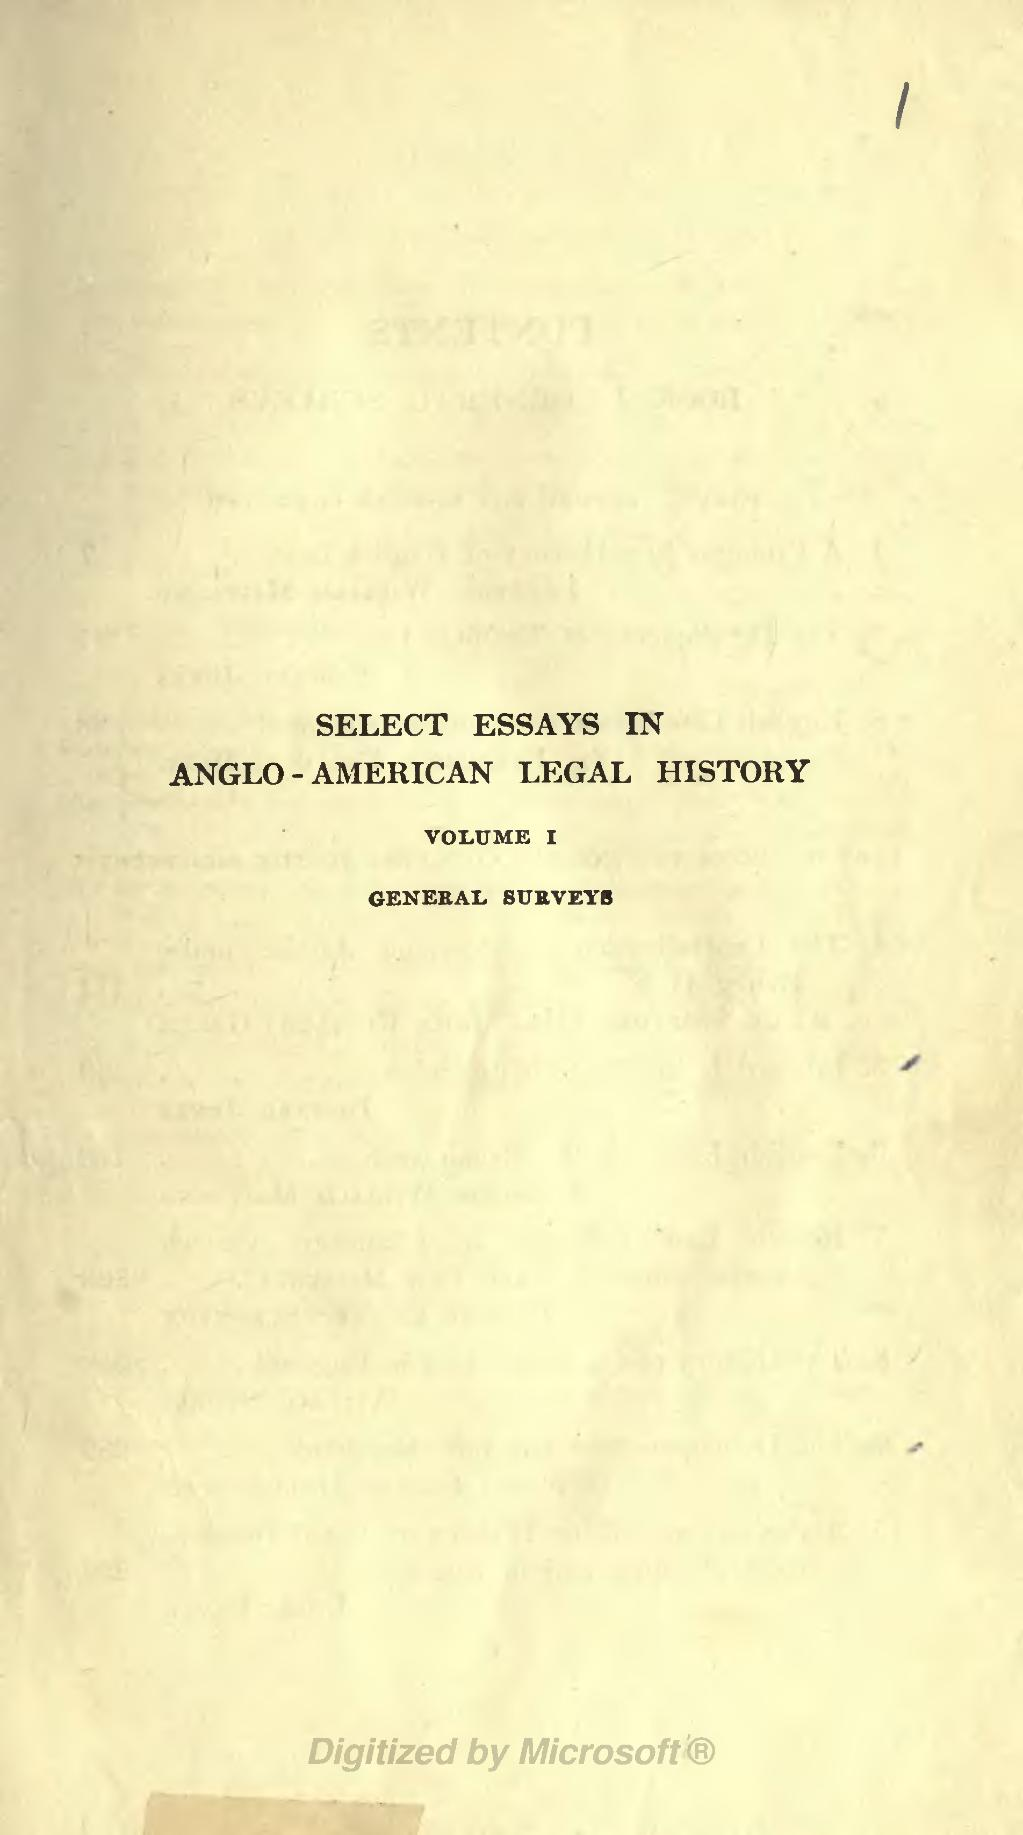 select essays in anglo-american legal history Edition used: committee of the association of american law schools, select essays in anglo-american legal history, by various authors, compiled and edited by a.